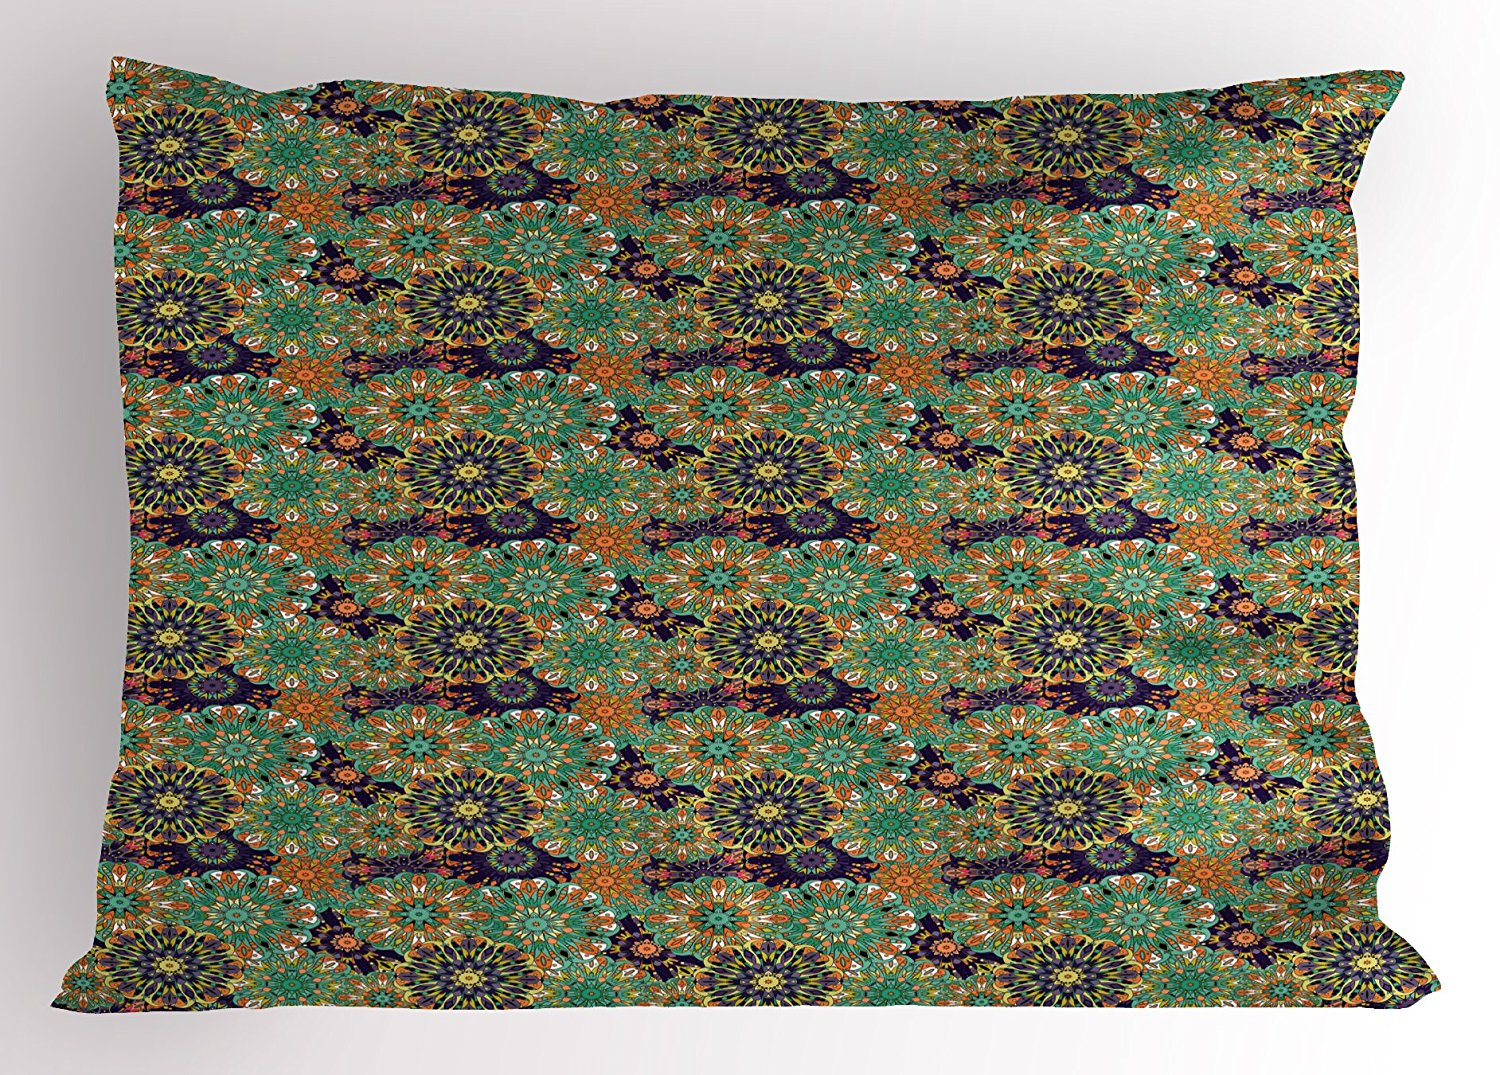 Mandala Pillow Sham by Lunarable, Vintage Composition of Flowers with Abstract Petals Middle Eastern Arrangement, Decorative Standard Size Printed Pillowcase, 26 X 20 Inches, Multicolor